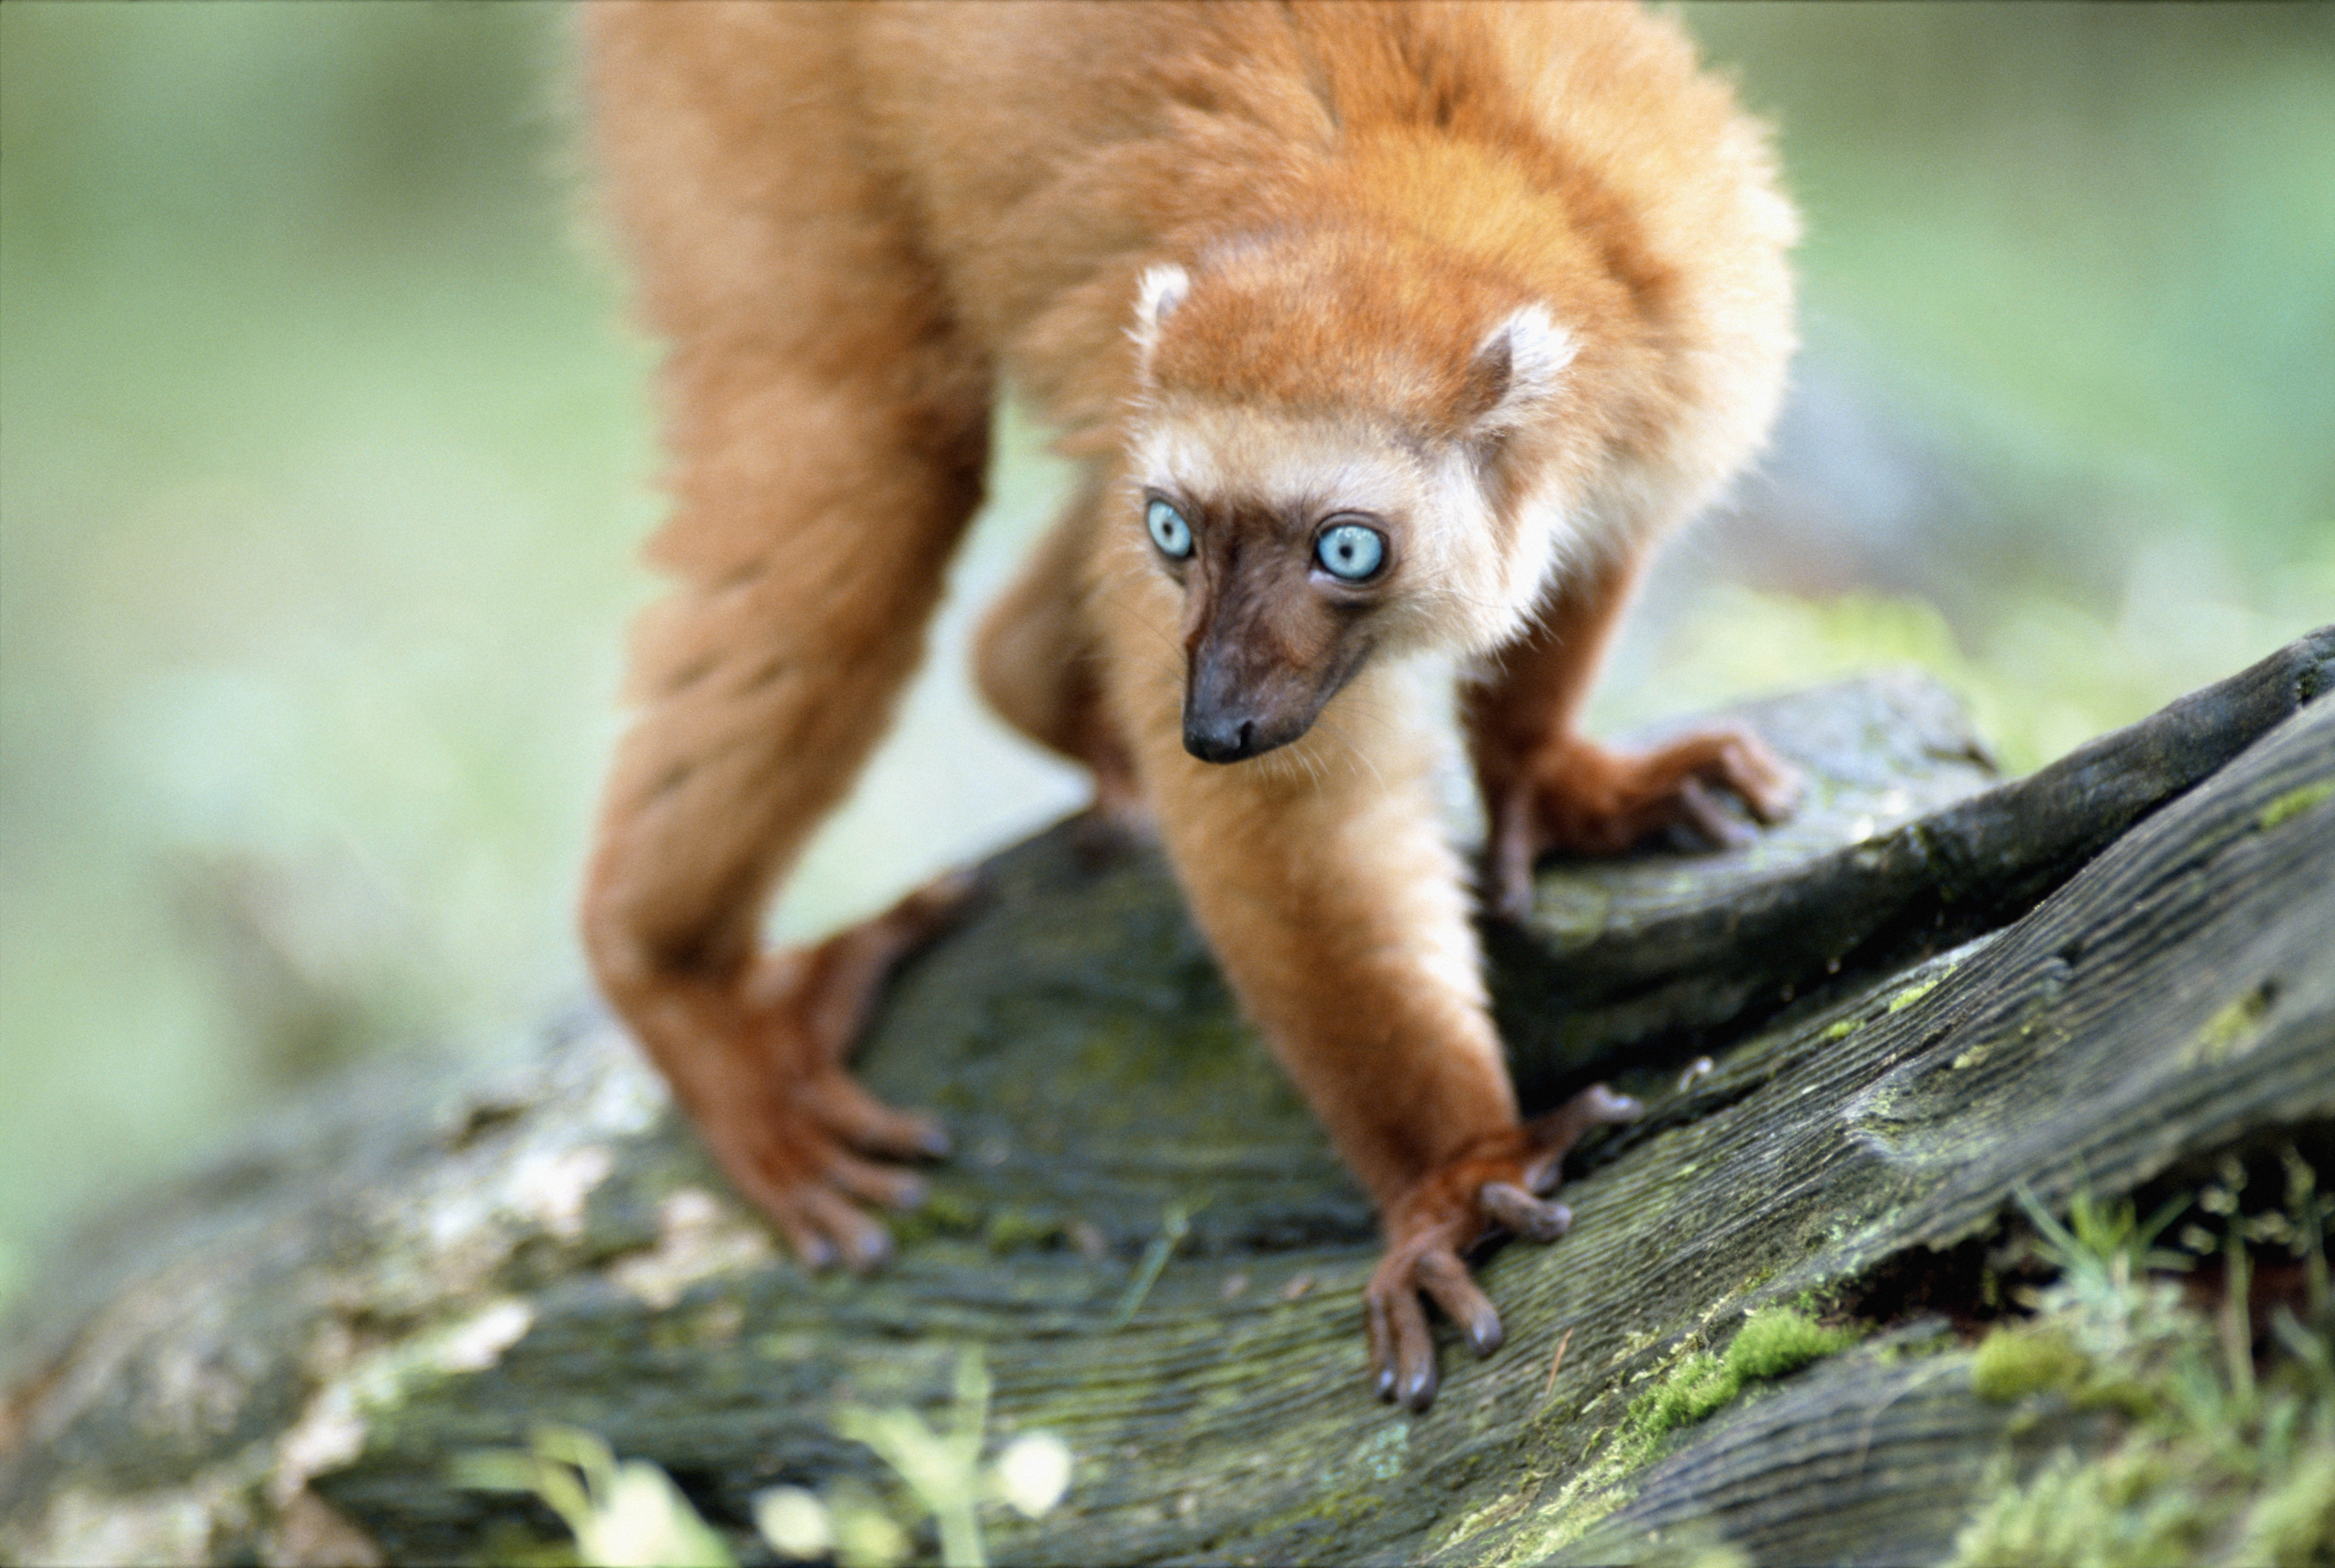 146874 download wallpaper Animals, Lemur, Blue Eyes, Branches, Moss screensavers and pictures for free